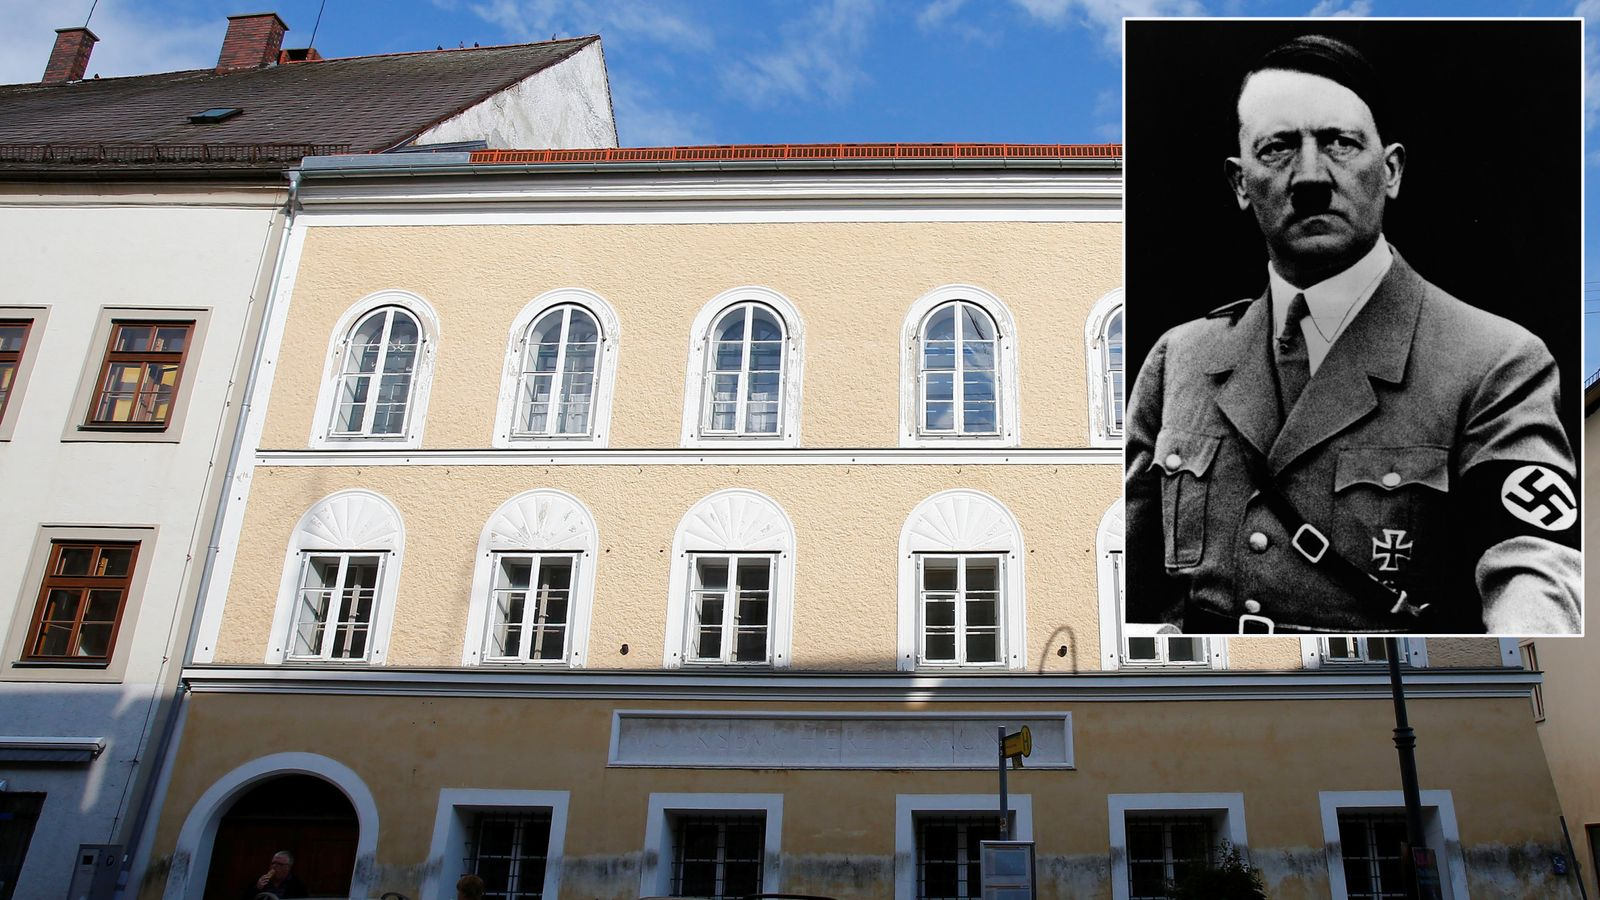 a biography of adolf hitler born in braunau austria A short biography of adolf hitler (1889-1945) - thoughtco adolf hitler was born in braunau am inn, austria, on april 20th 1889 to alois hitler (who, as an illegitimate child, had previously used his mother's name of schickelgruber) and klara poelzl.